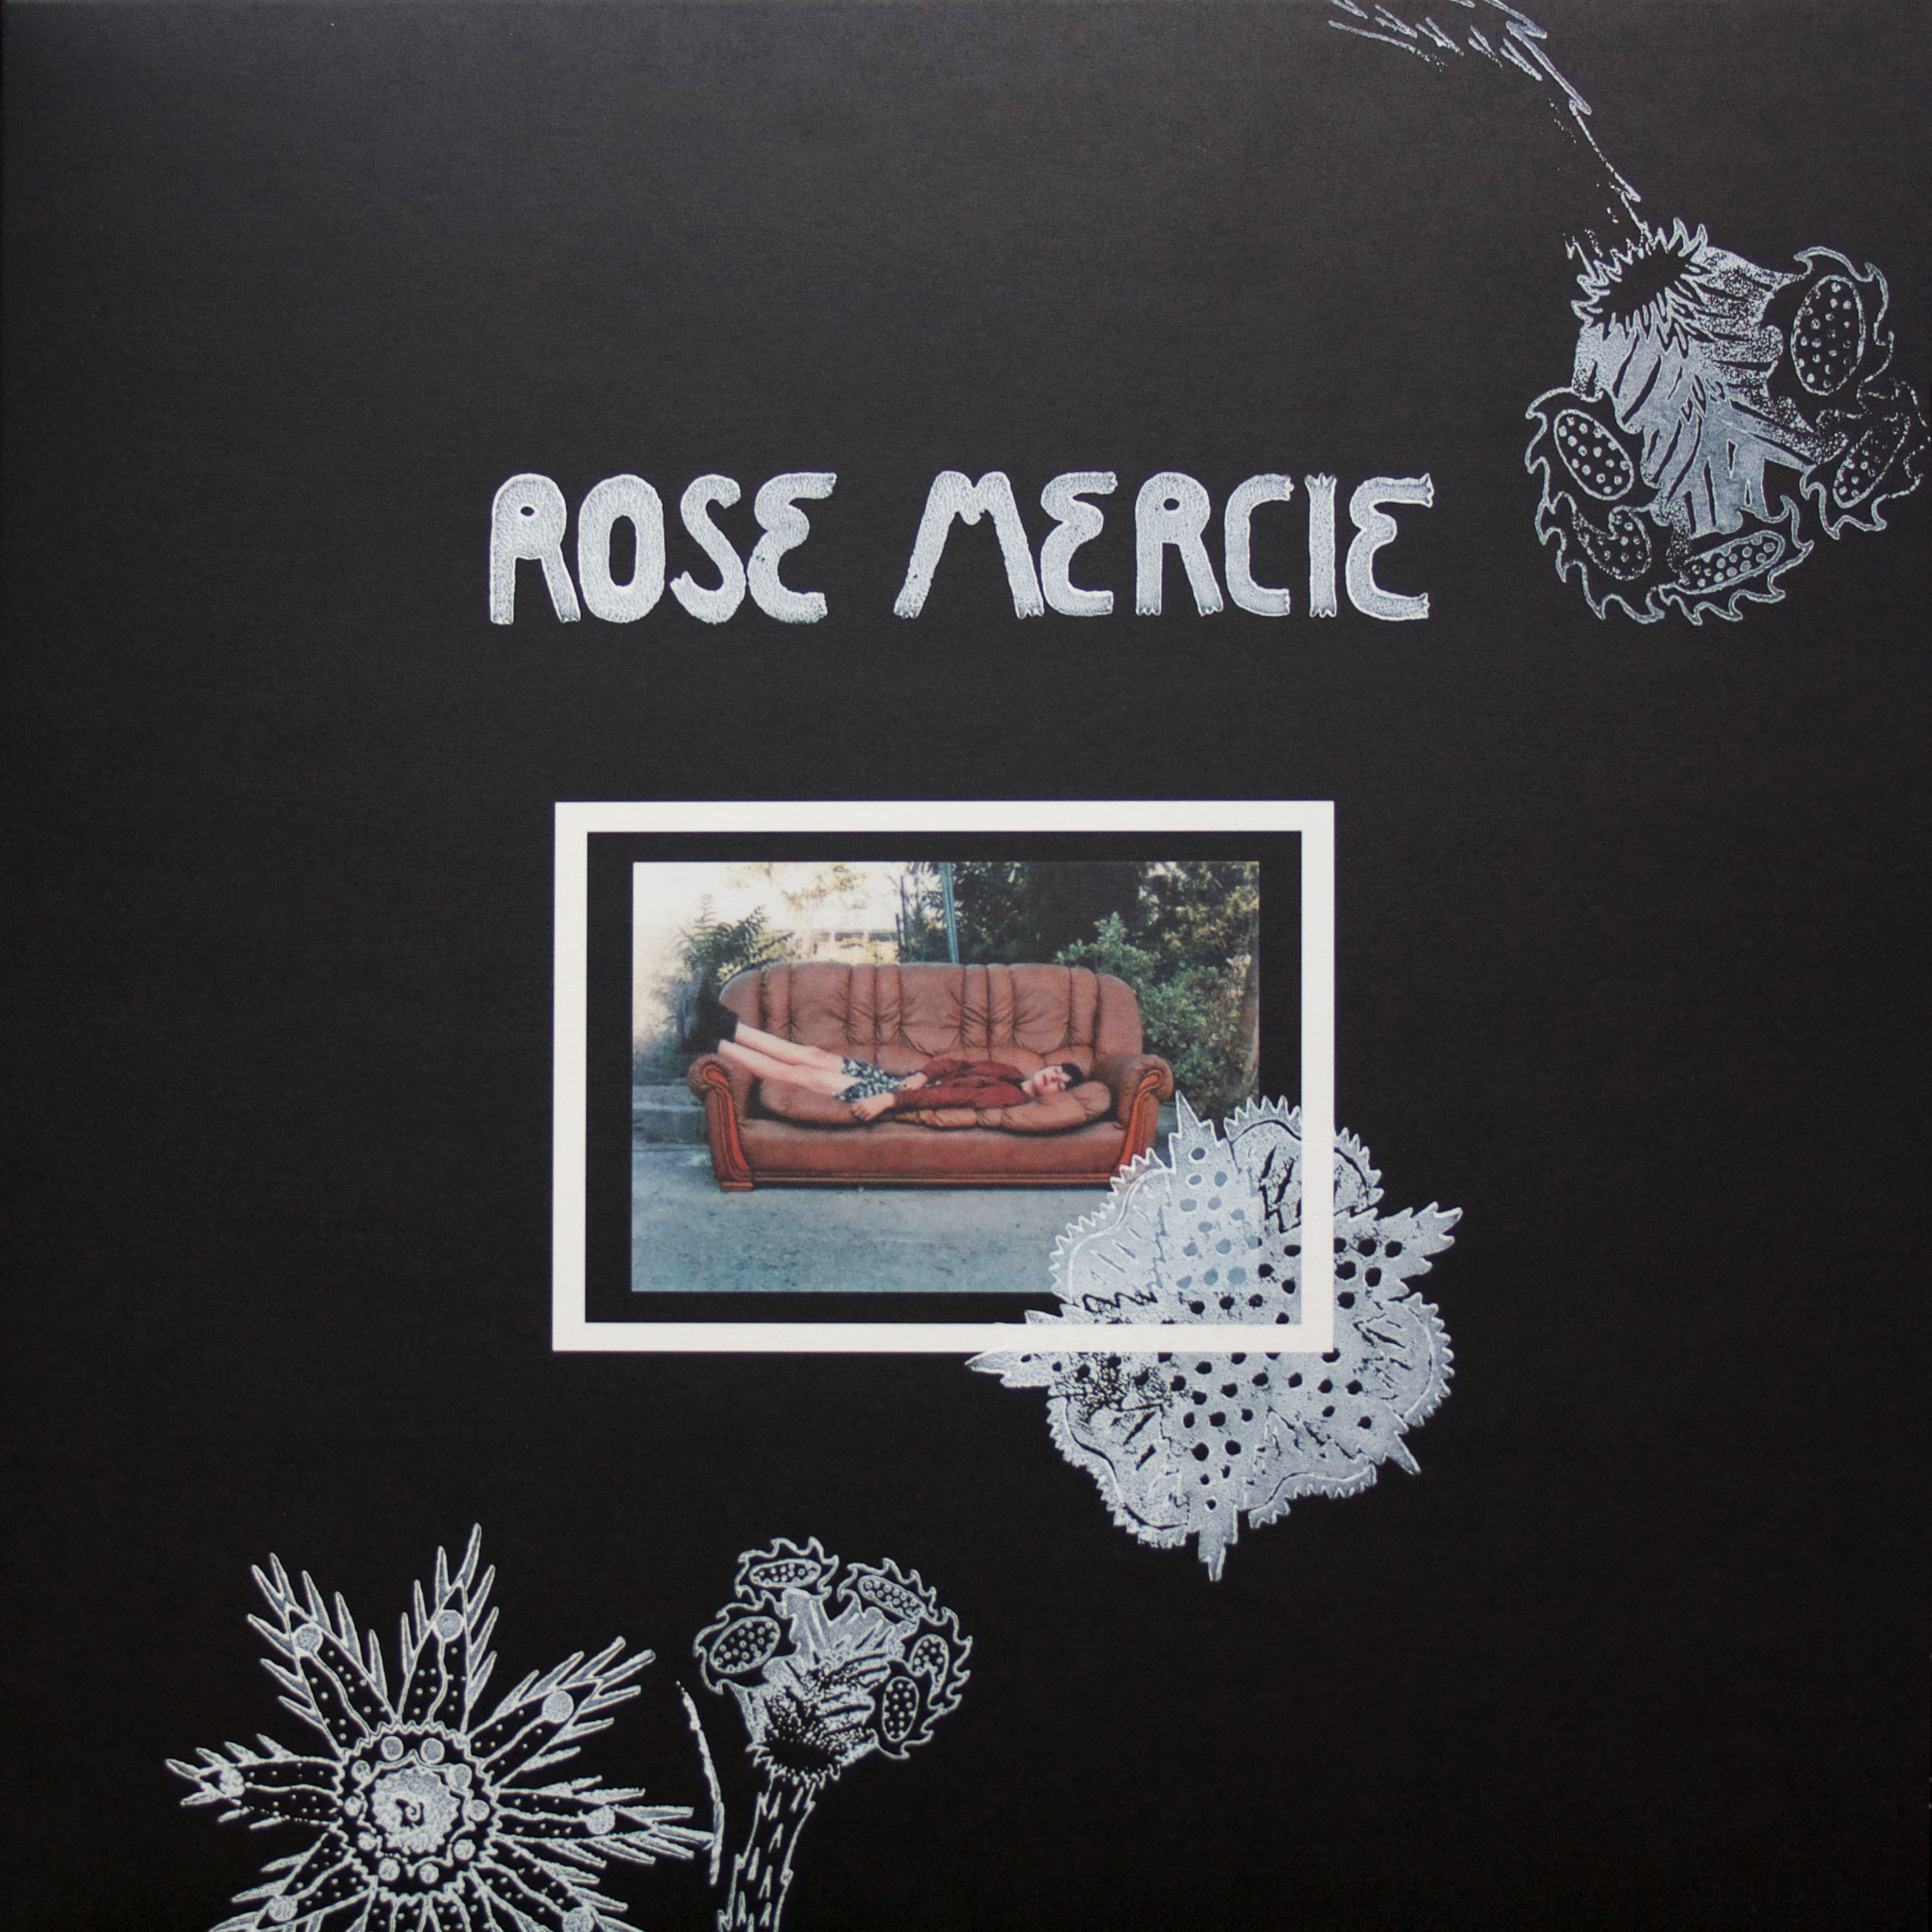 rosemercie-artwork.jpg